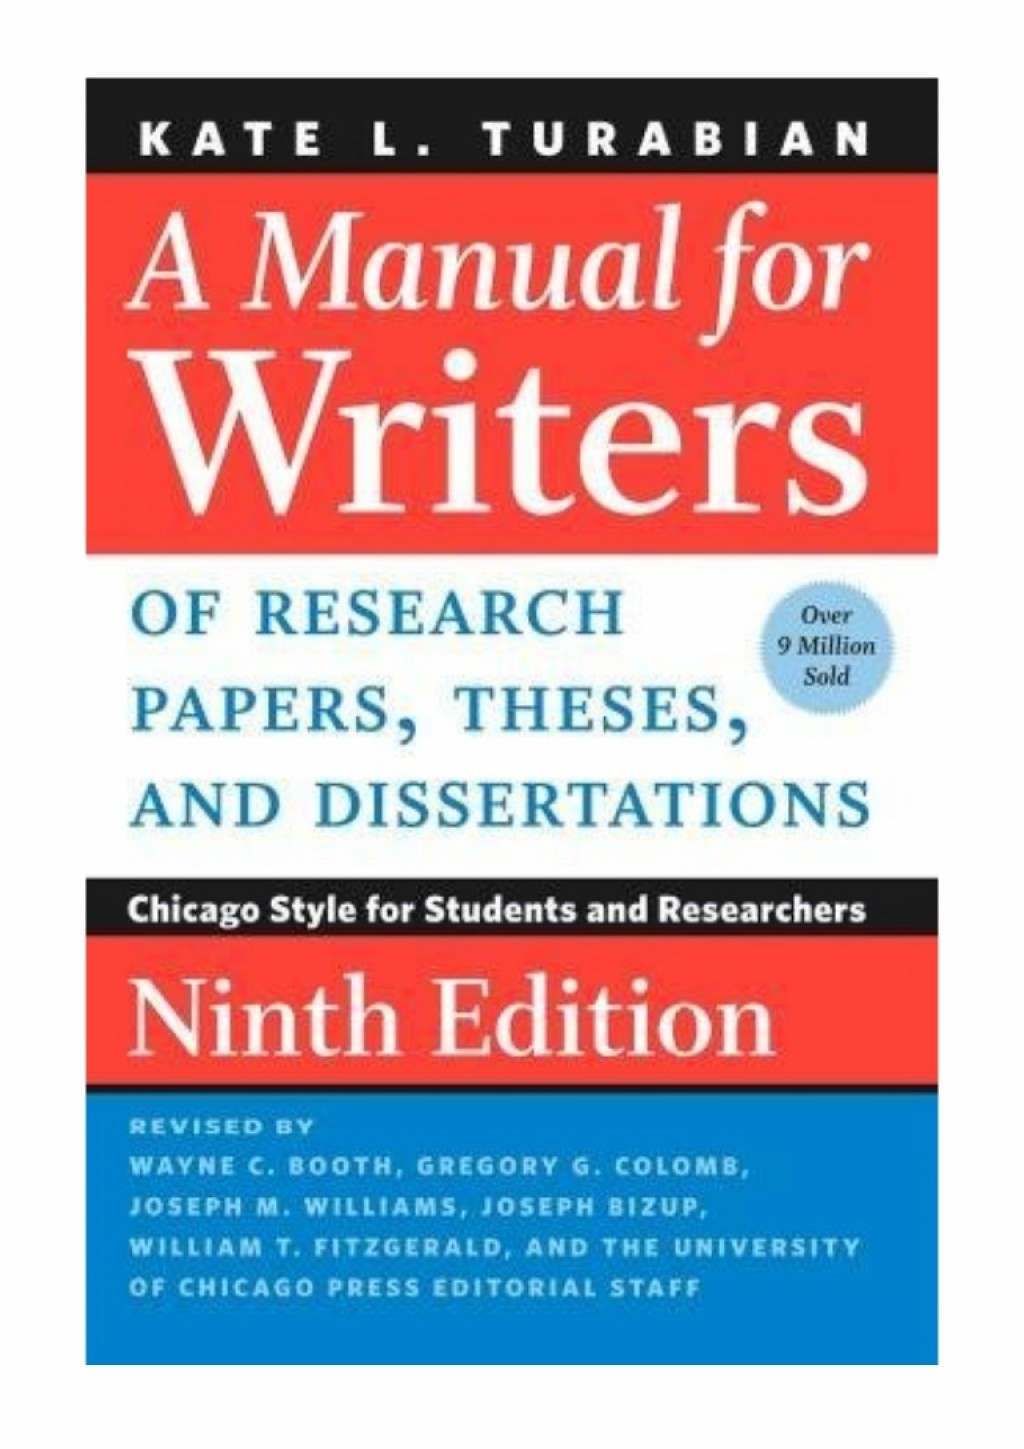 010 Manual For Writers Of Research Papers Theses And Dissertations Paper 022643057x Amanualforwritersofresearchpapersthesesanddissertationsnintheditionbykatel Thumbnail Magnificent A Amazon 9th Edition Pdf 8th 13 Large